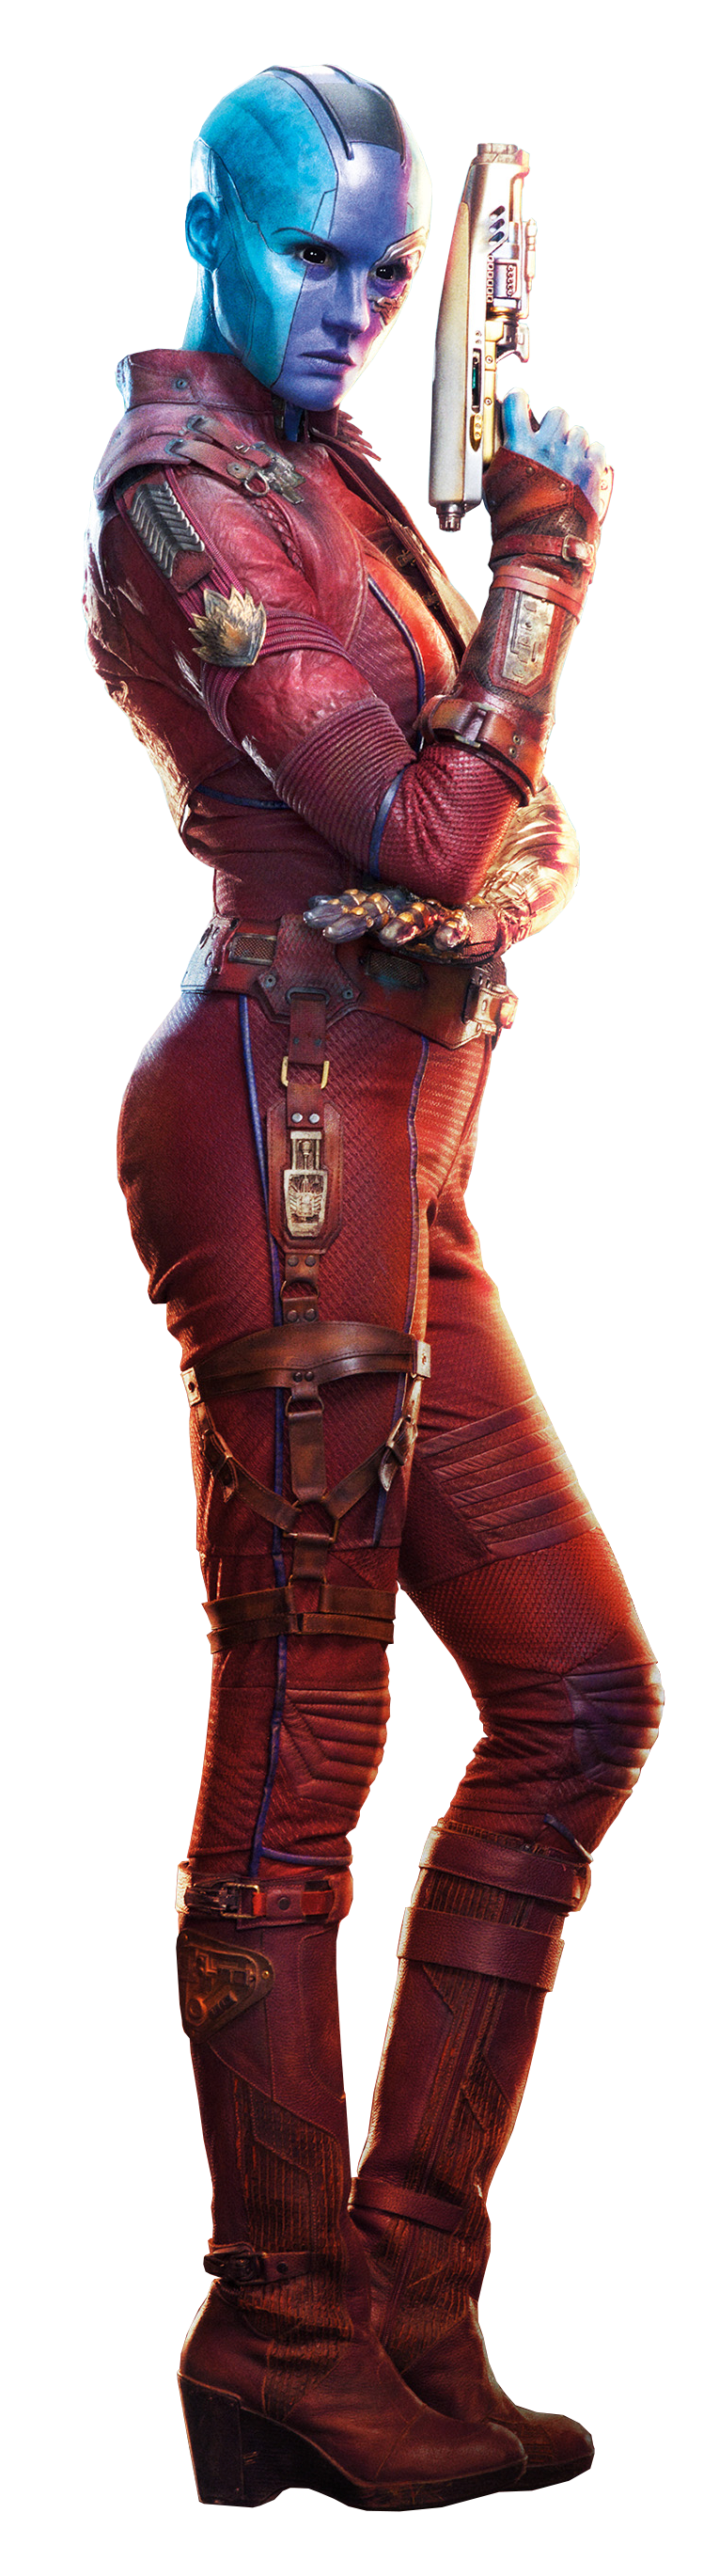 Nebula png marvel. Guardians of the galaxy